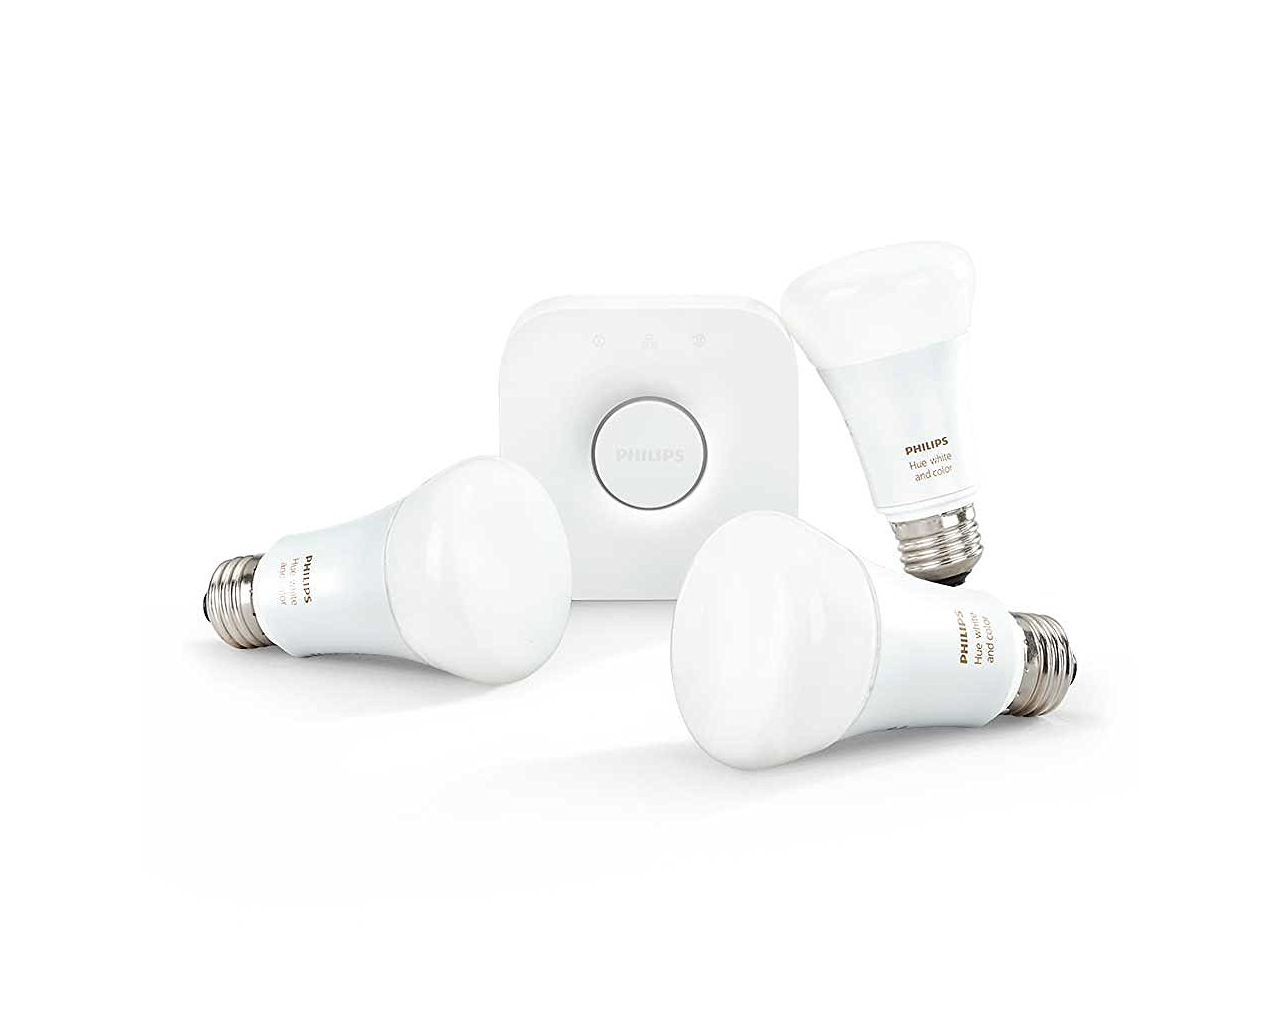 philips-hue-white-and-color-ambiance-a19-starter-kit